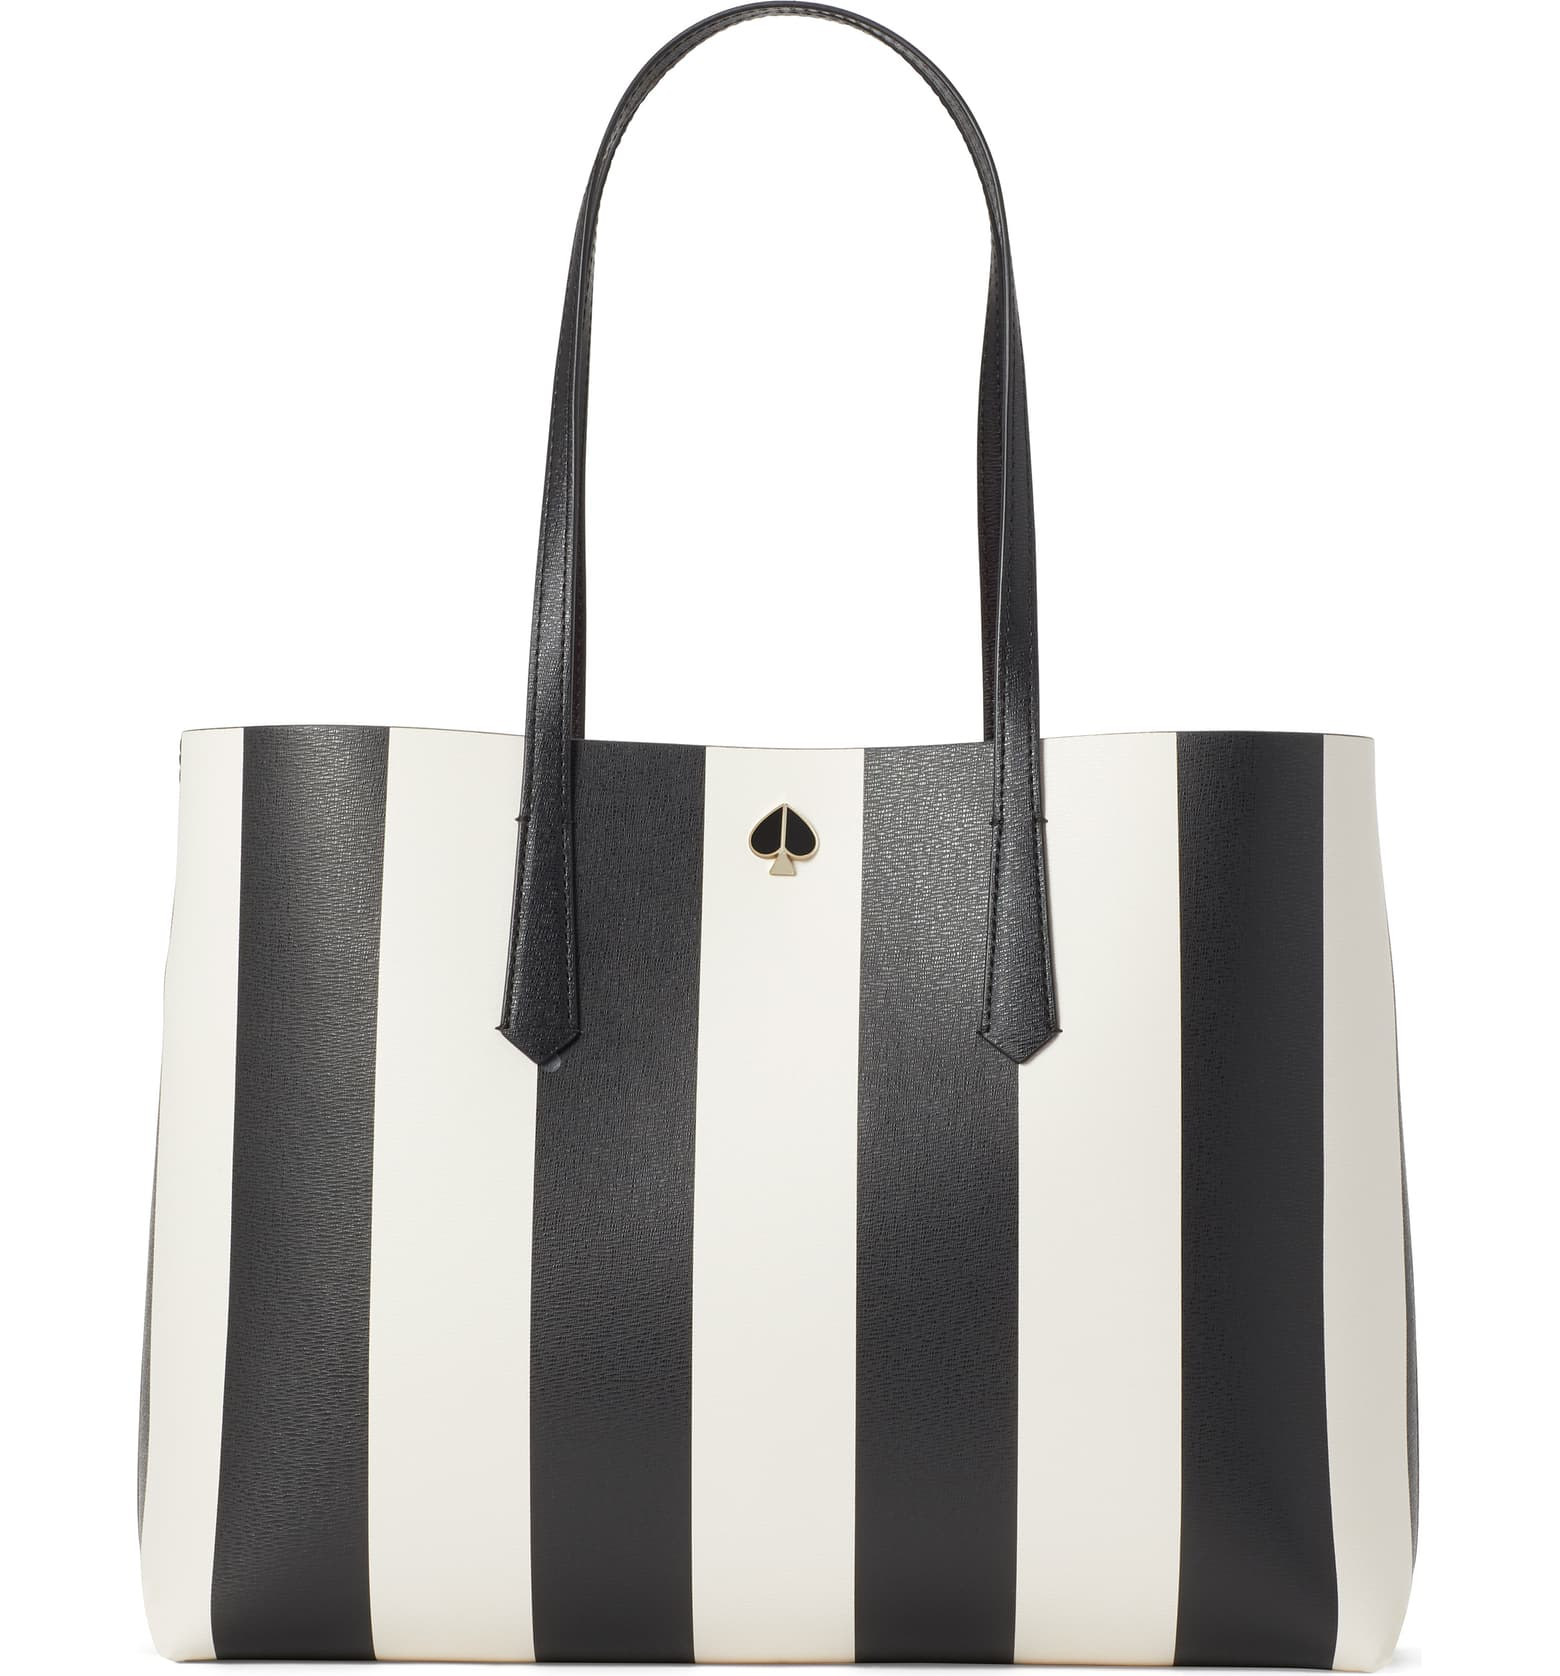 Black and white striped vegan tote bag.